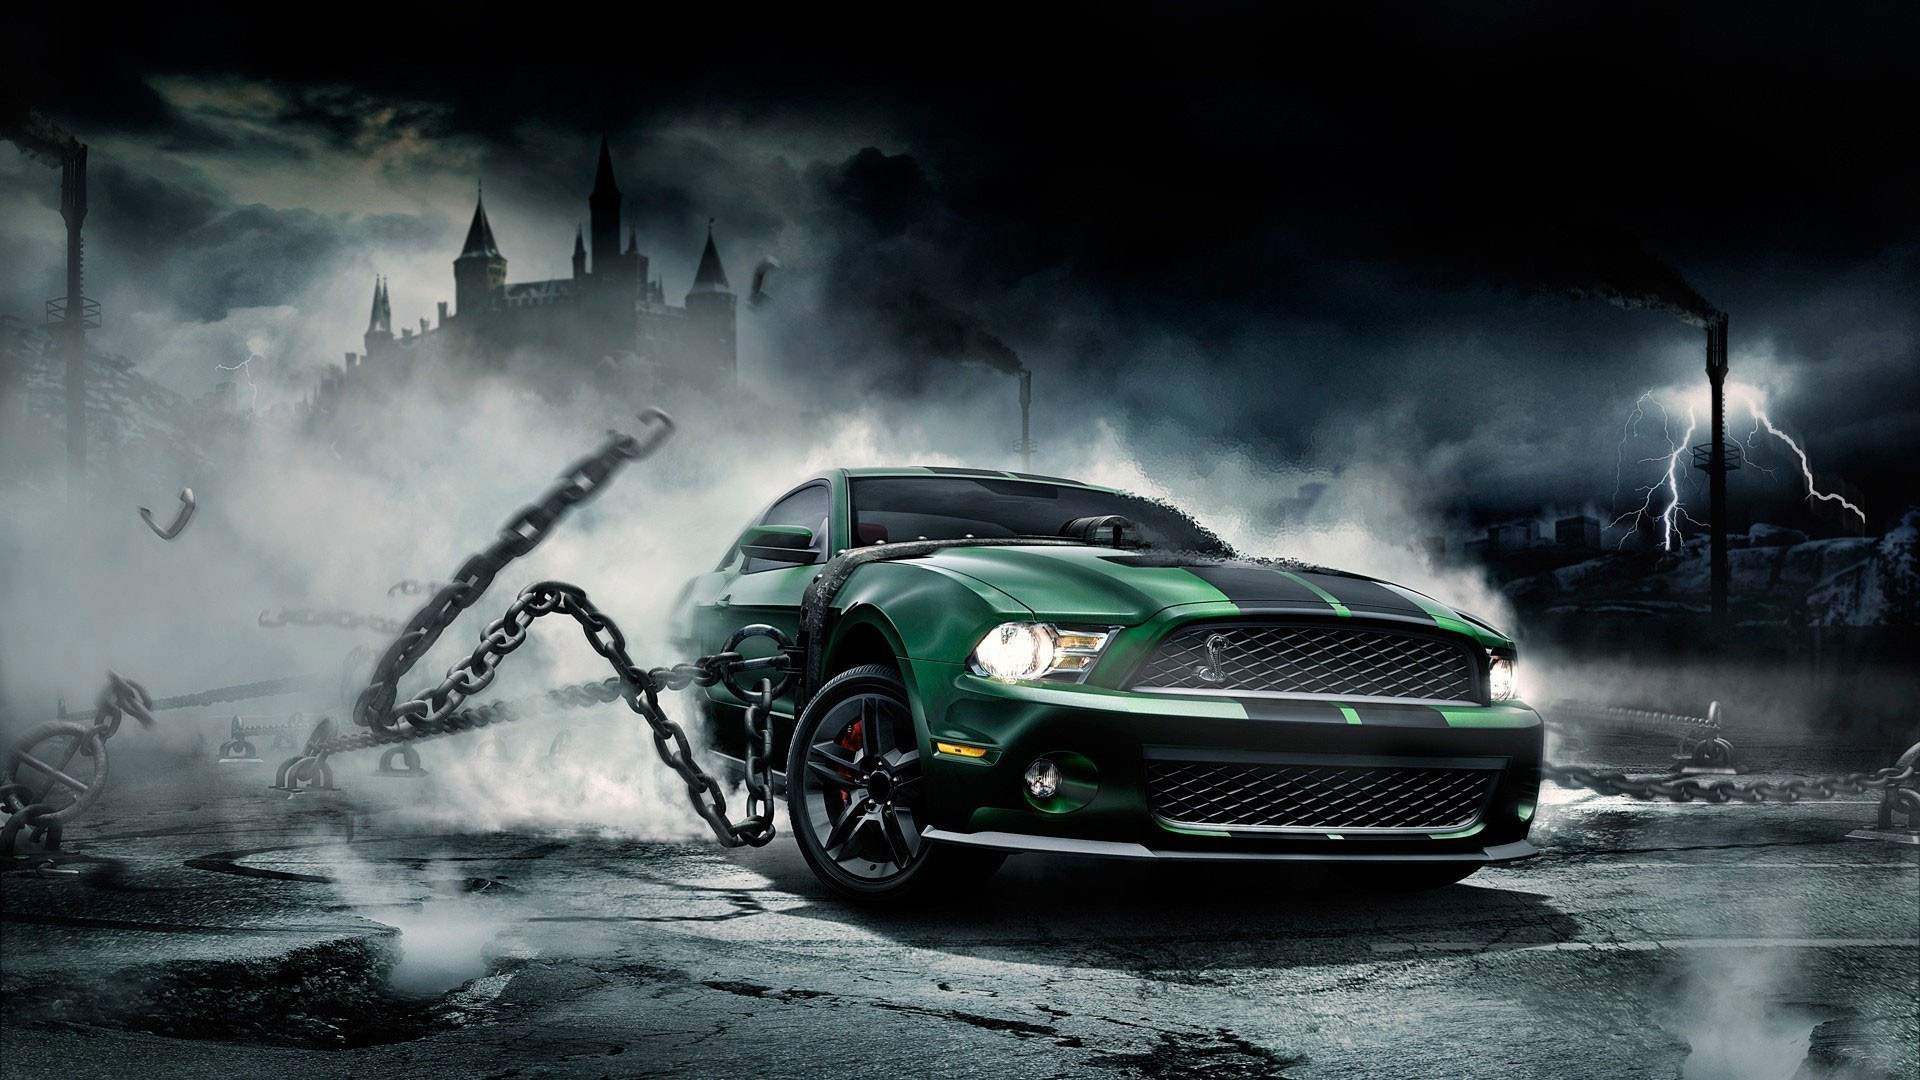 Res: 1920x1080, gt500 wallpaper 74 images ford mustang shelby hd